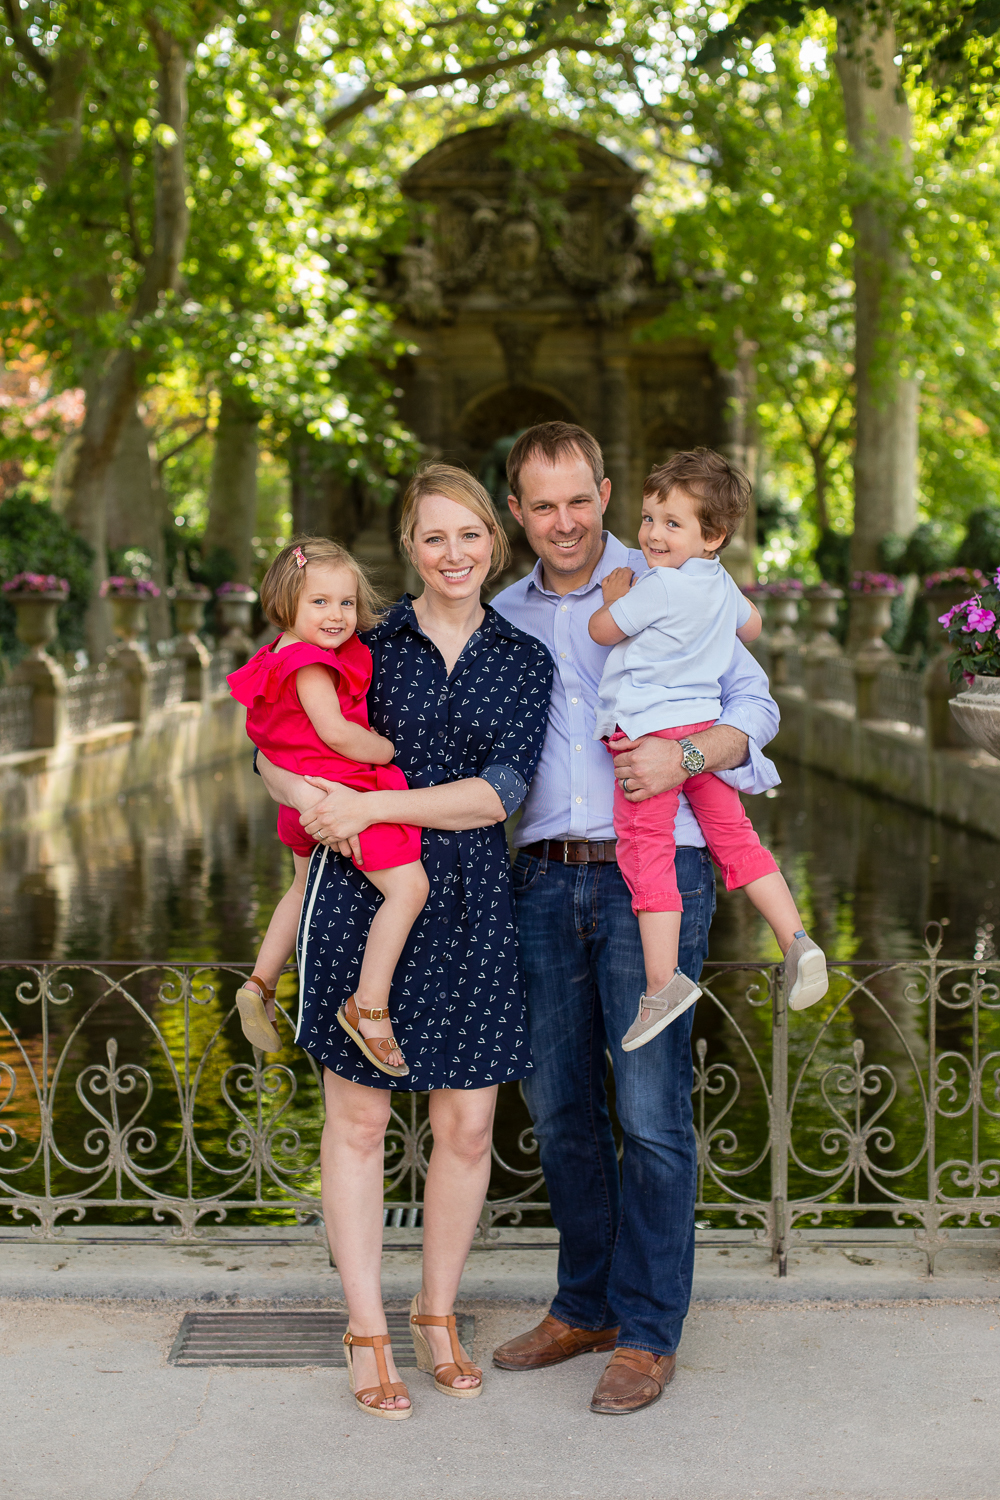 outdoor-family-maternity-photo-session-luxembourg-gardens-paris-photographer_005.jpg